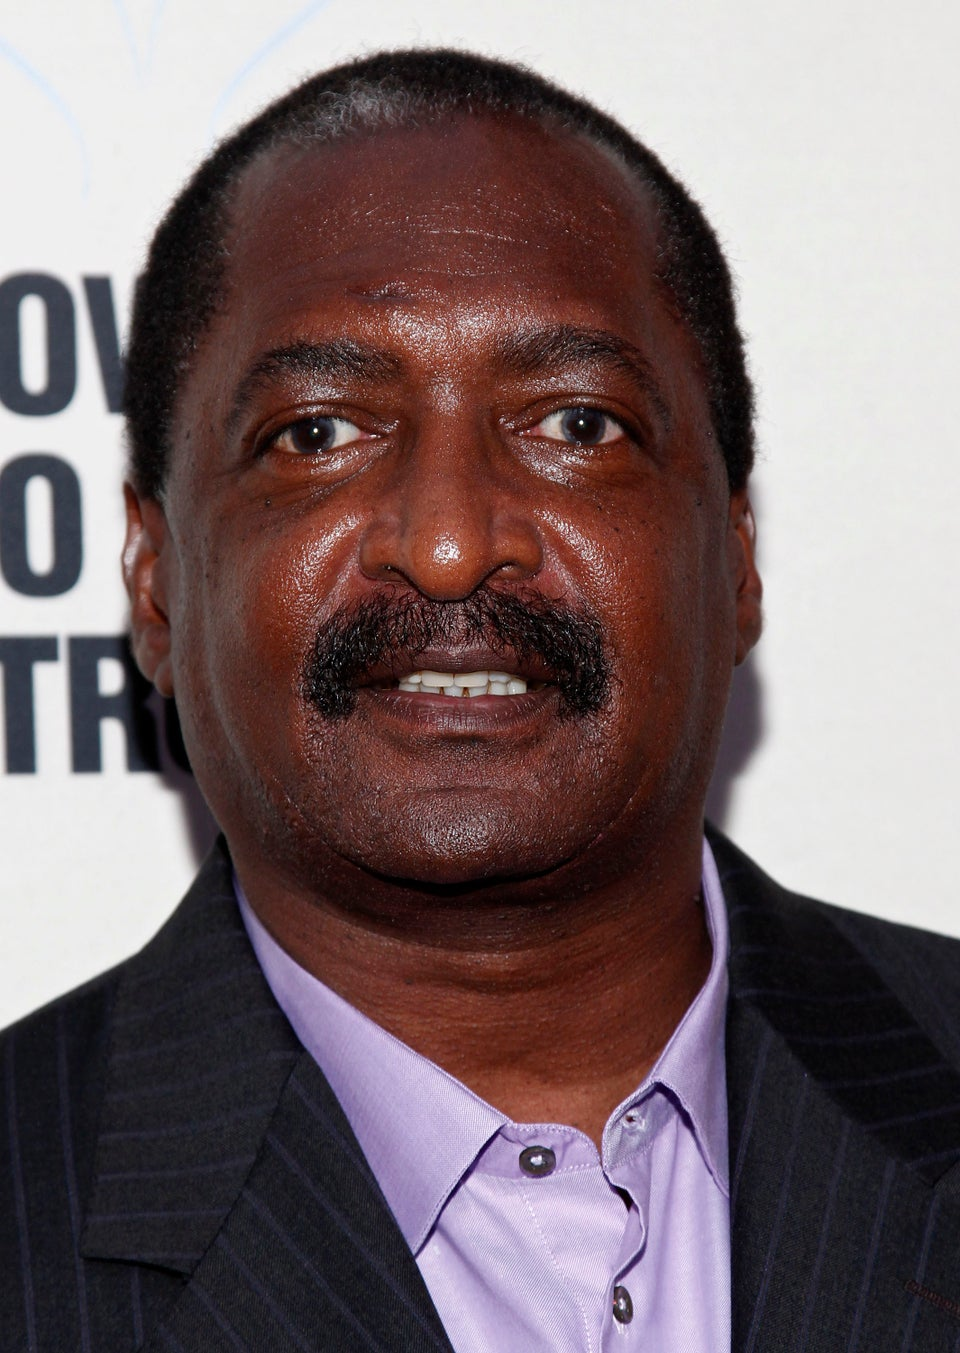 No, Mathew Knowles Is Not Banned From Beyoncé's Delivery Room